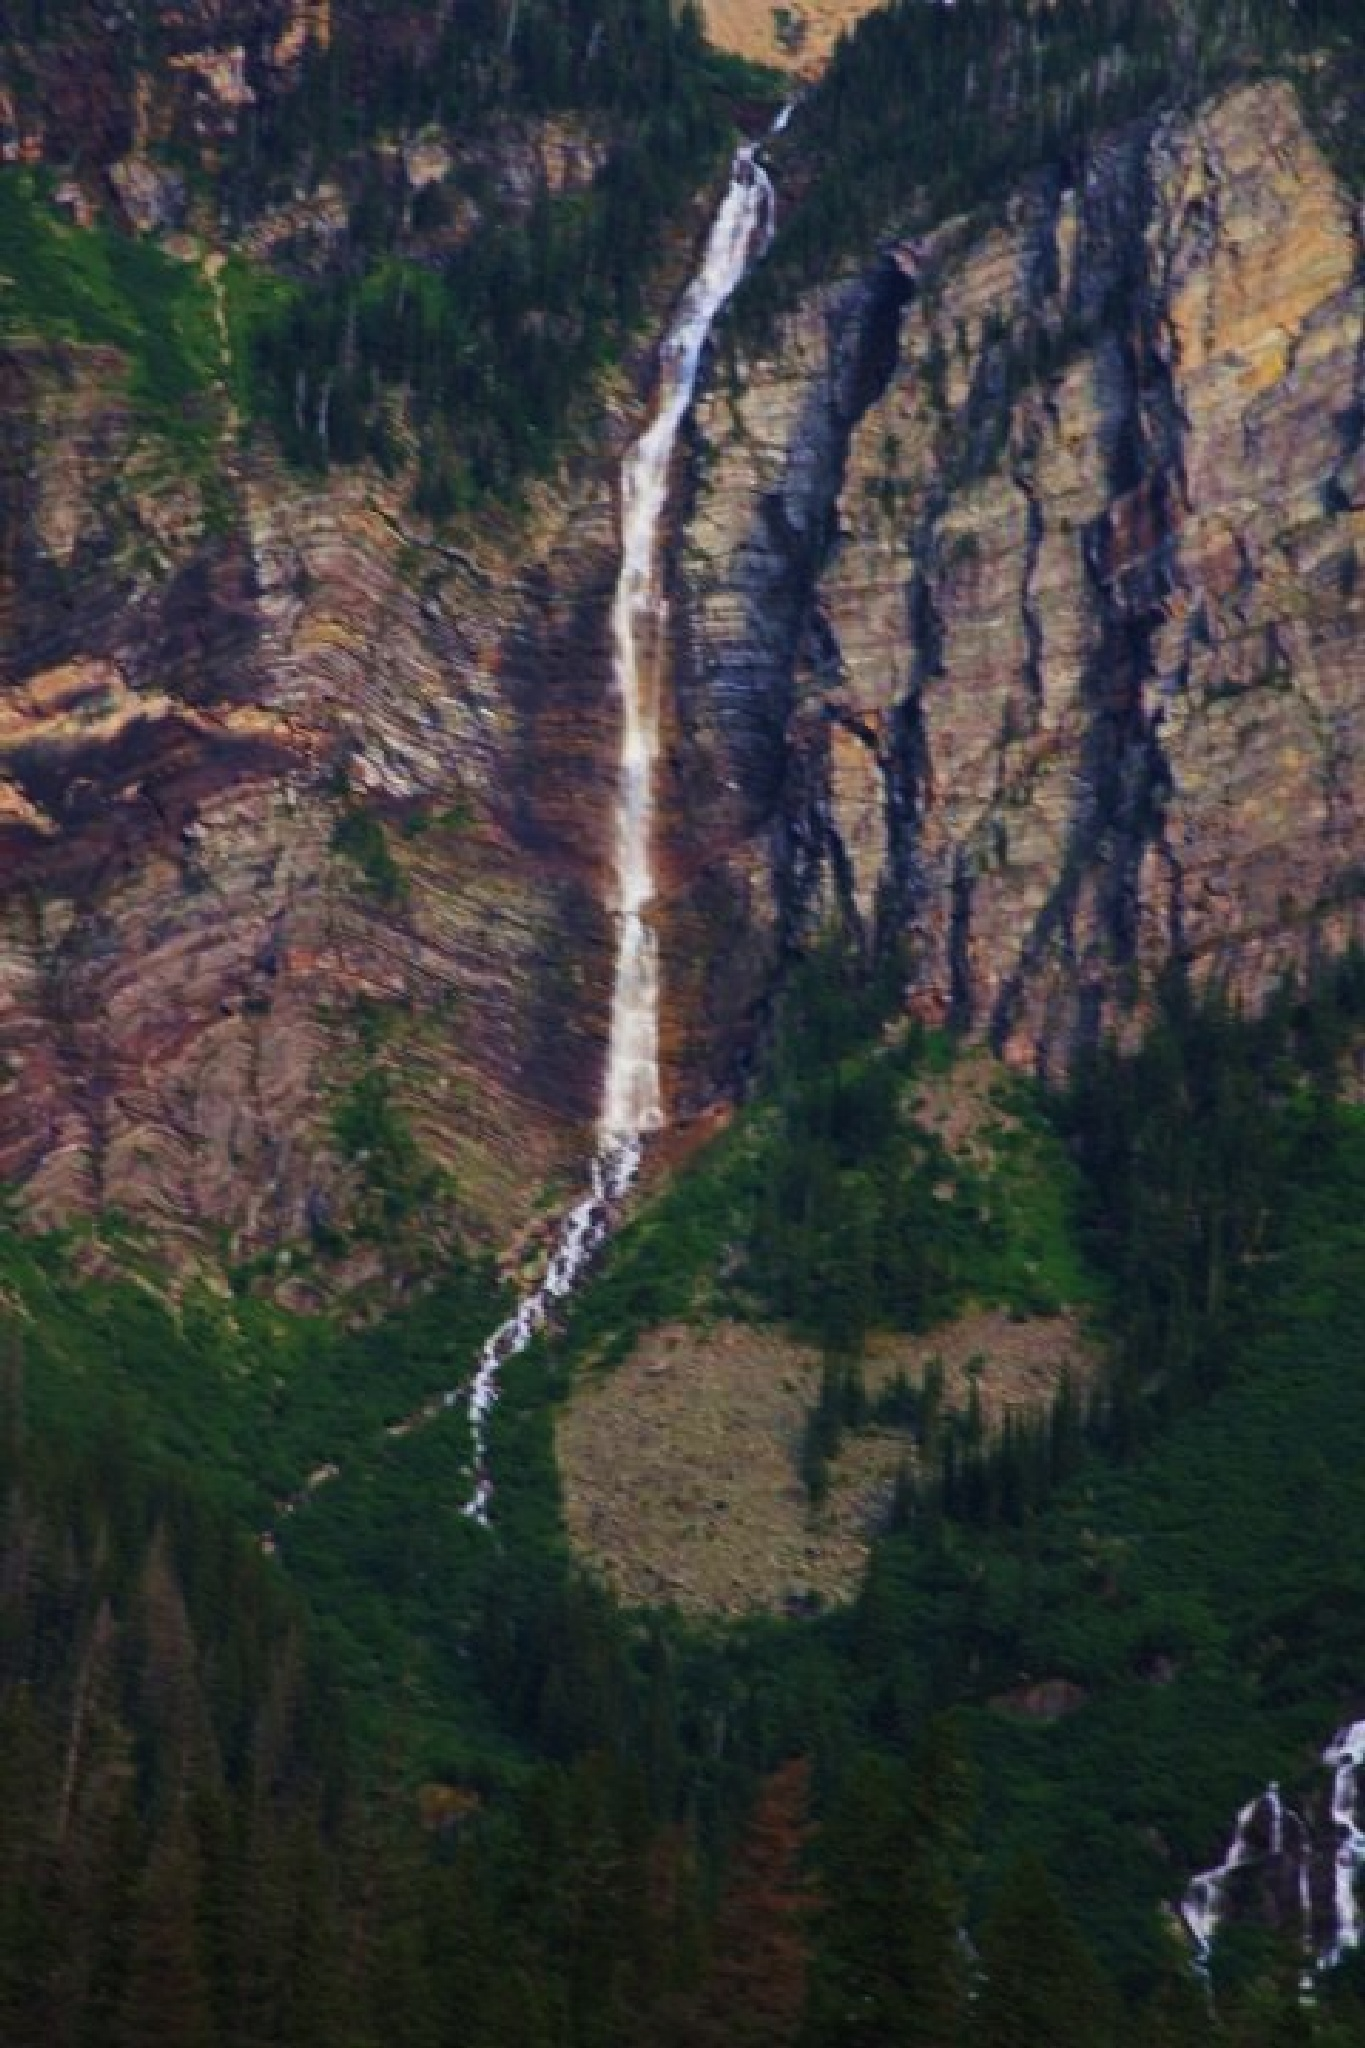 Another unnamed water fall at Glacier NP by  Houston Photography Studio